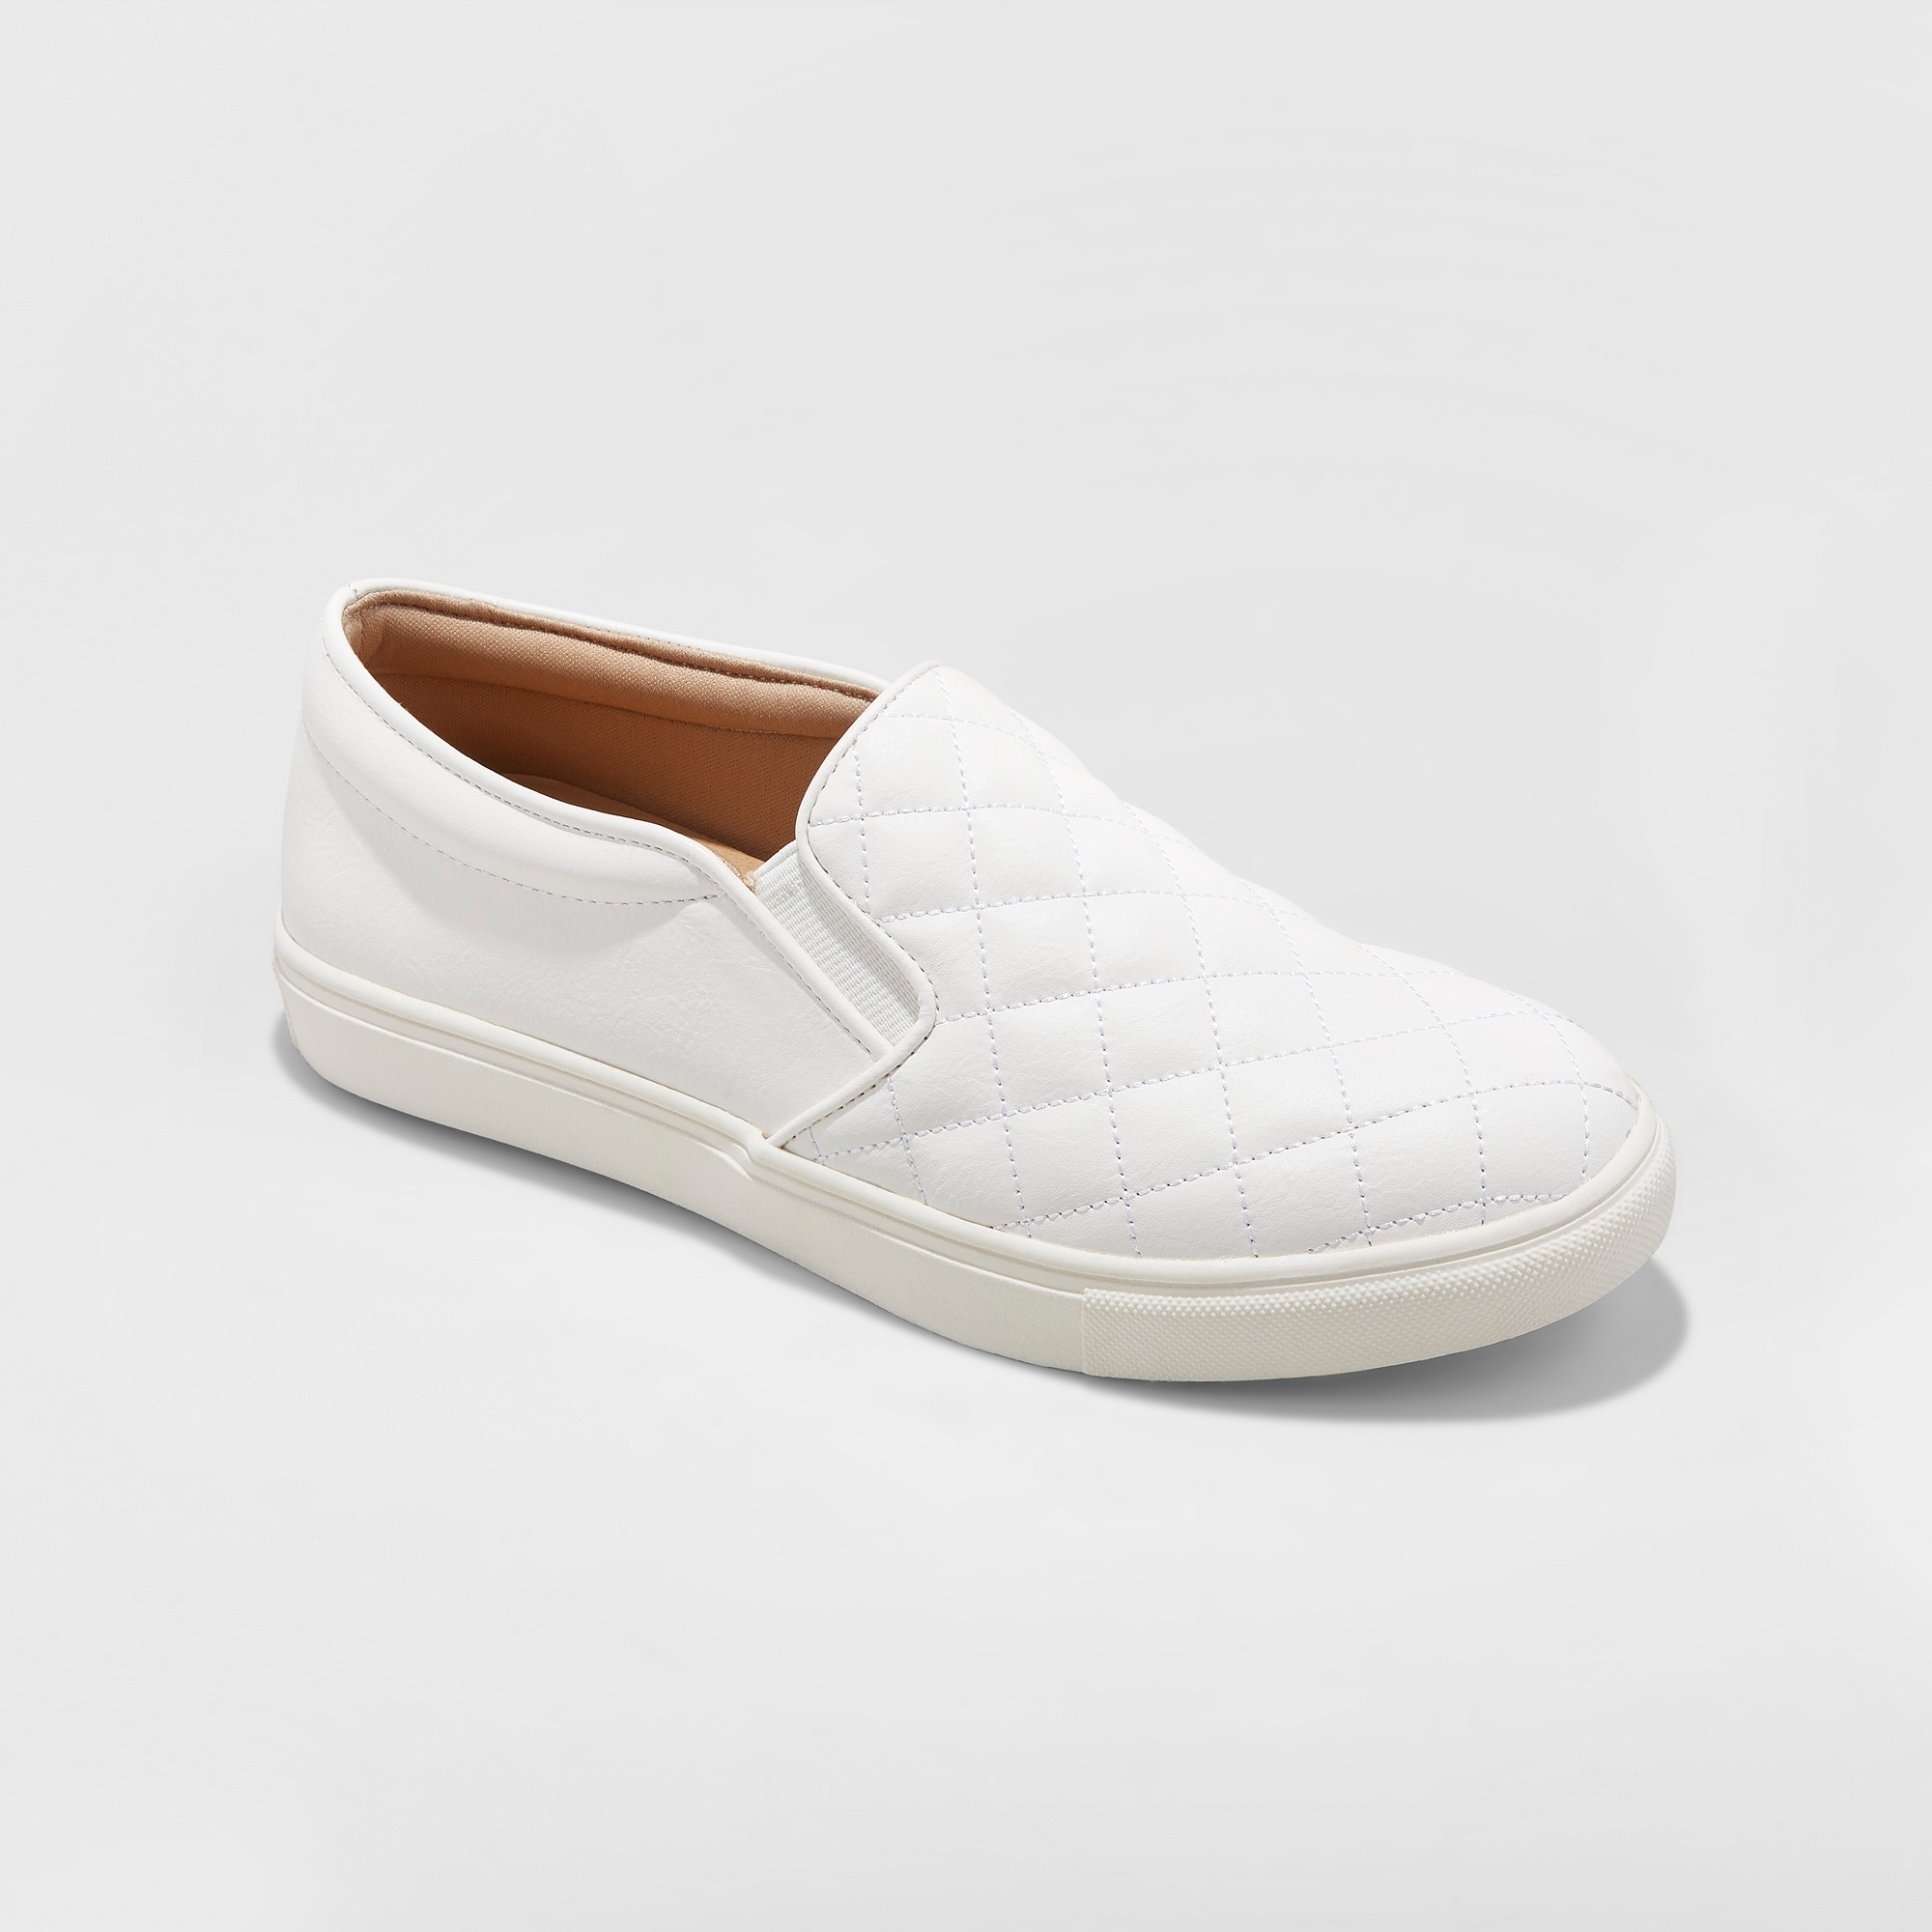 Women's Reese Wide Width Quilted Sneakers - A New Day White 5W, Size: 5 Wide